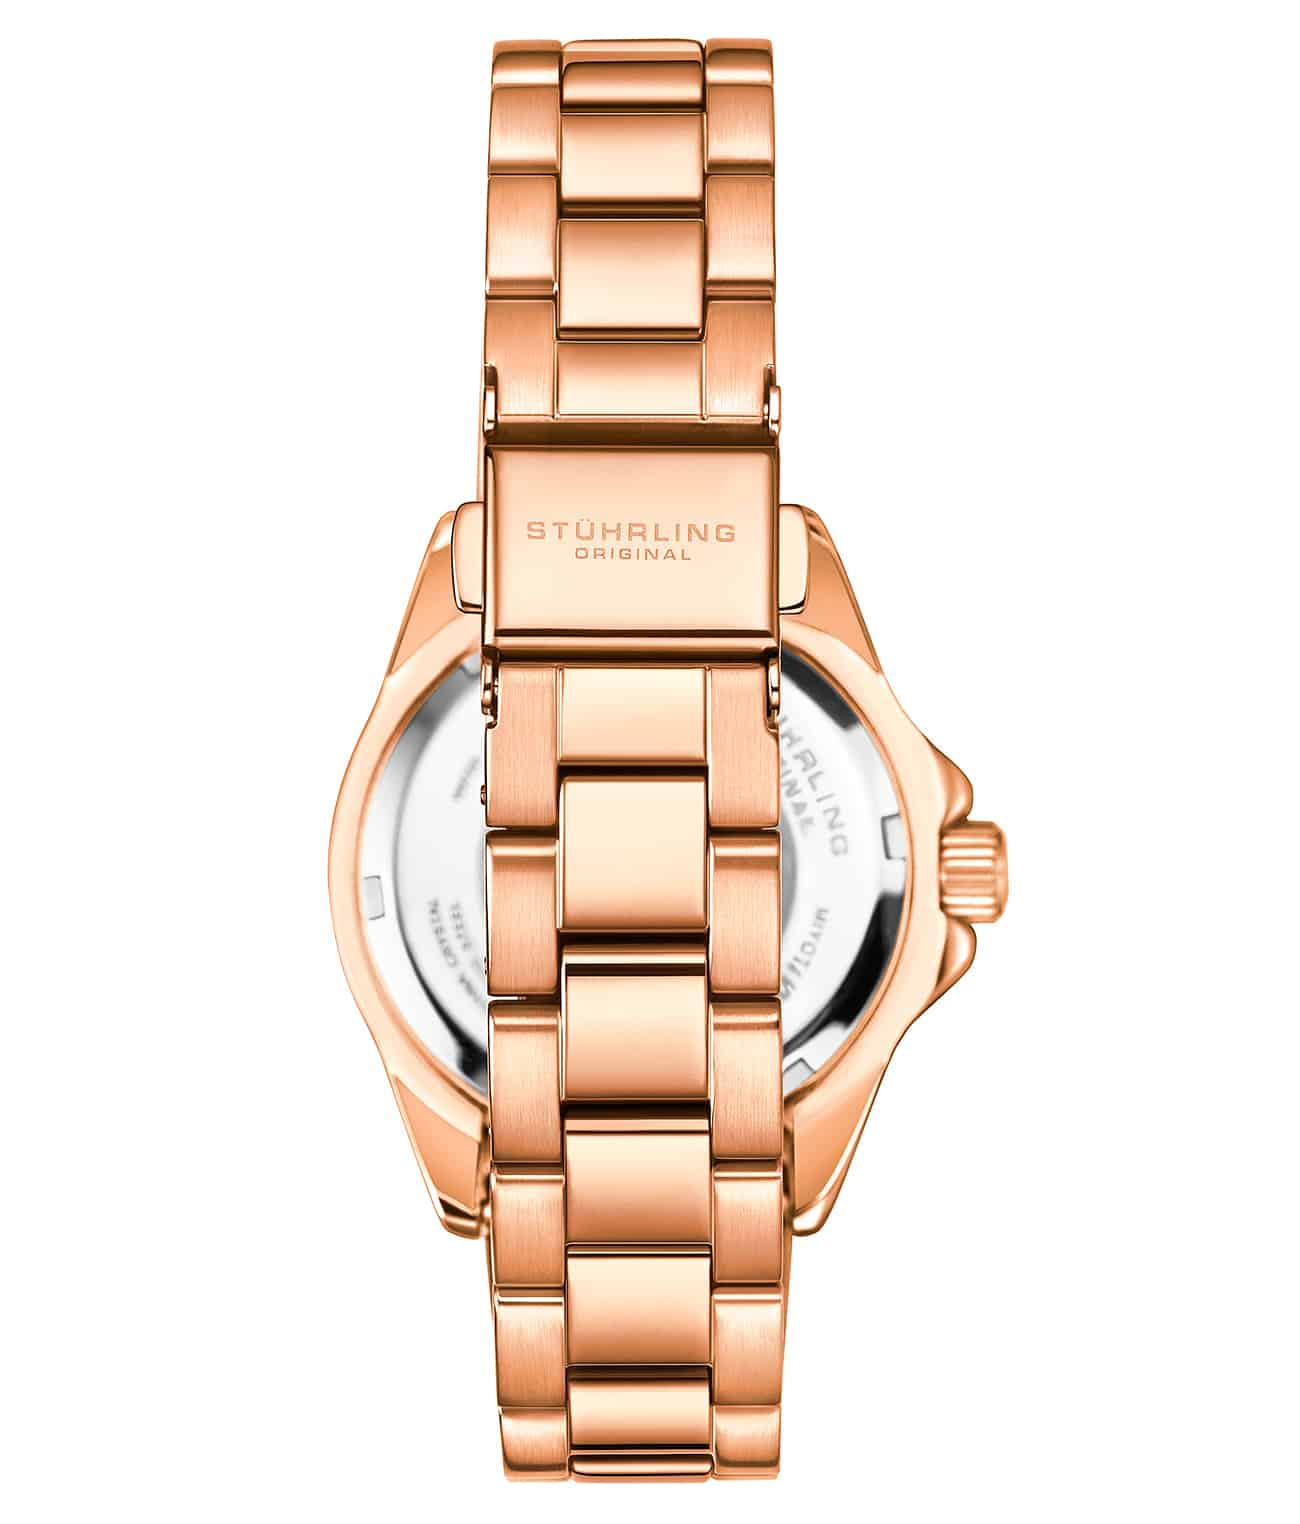 Black Dial / Rose Case / Rose Stainless Steel Bracelet Rose Gold Layered Deployant Buckle